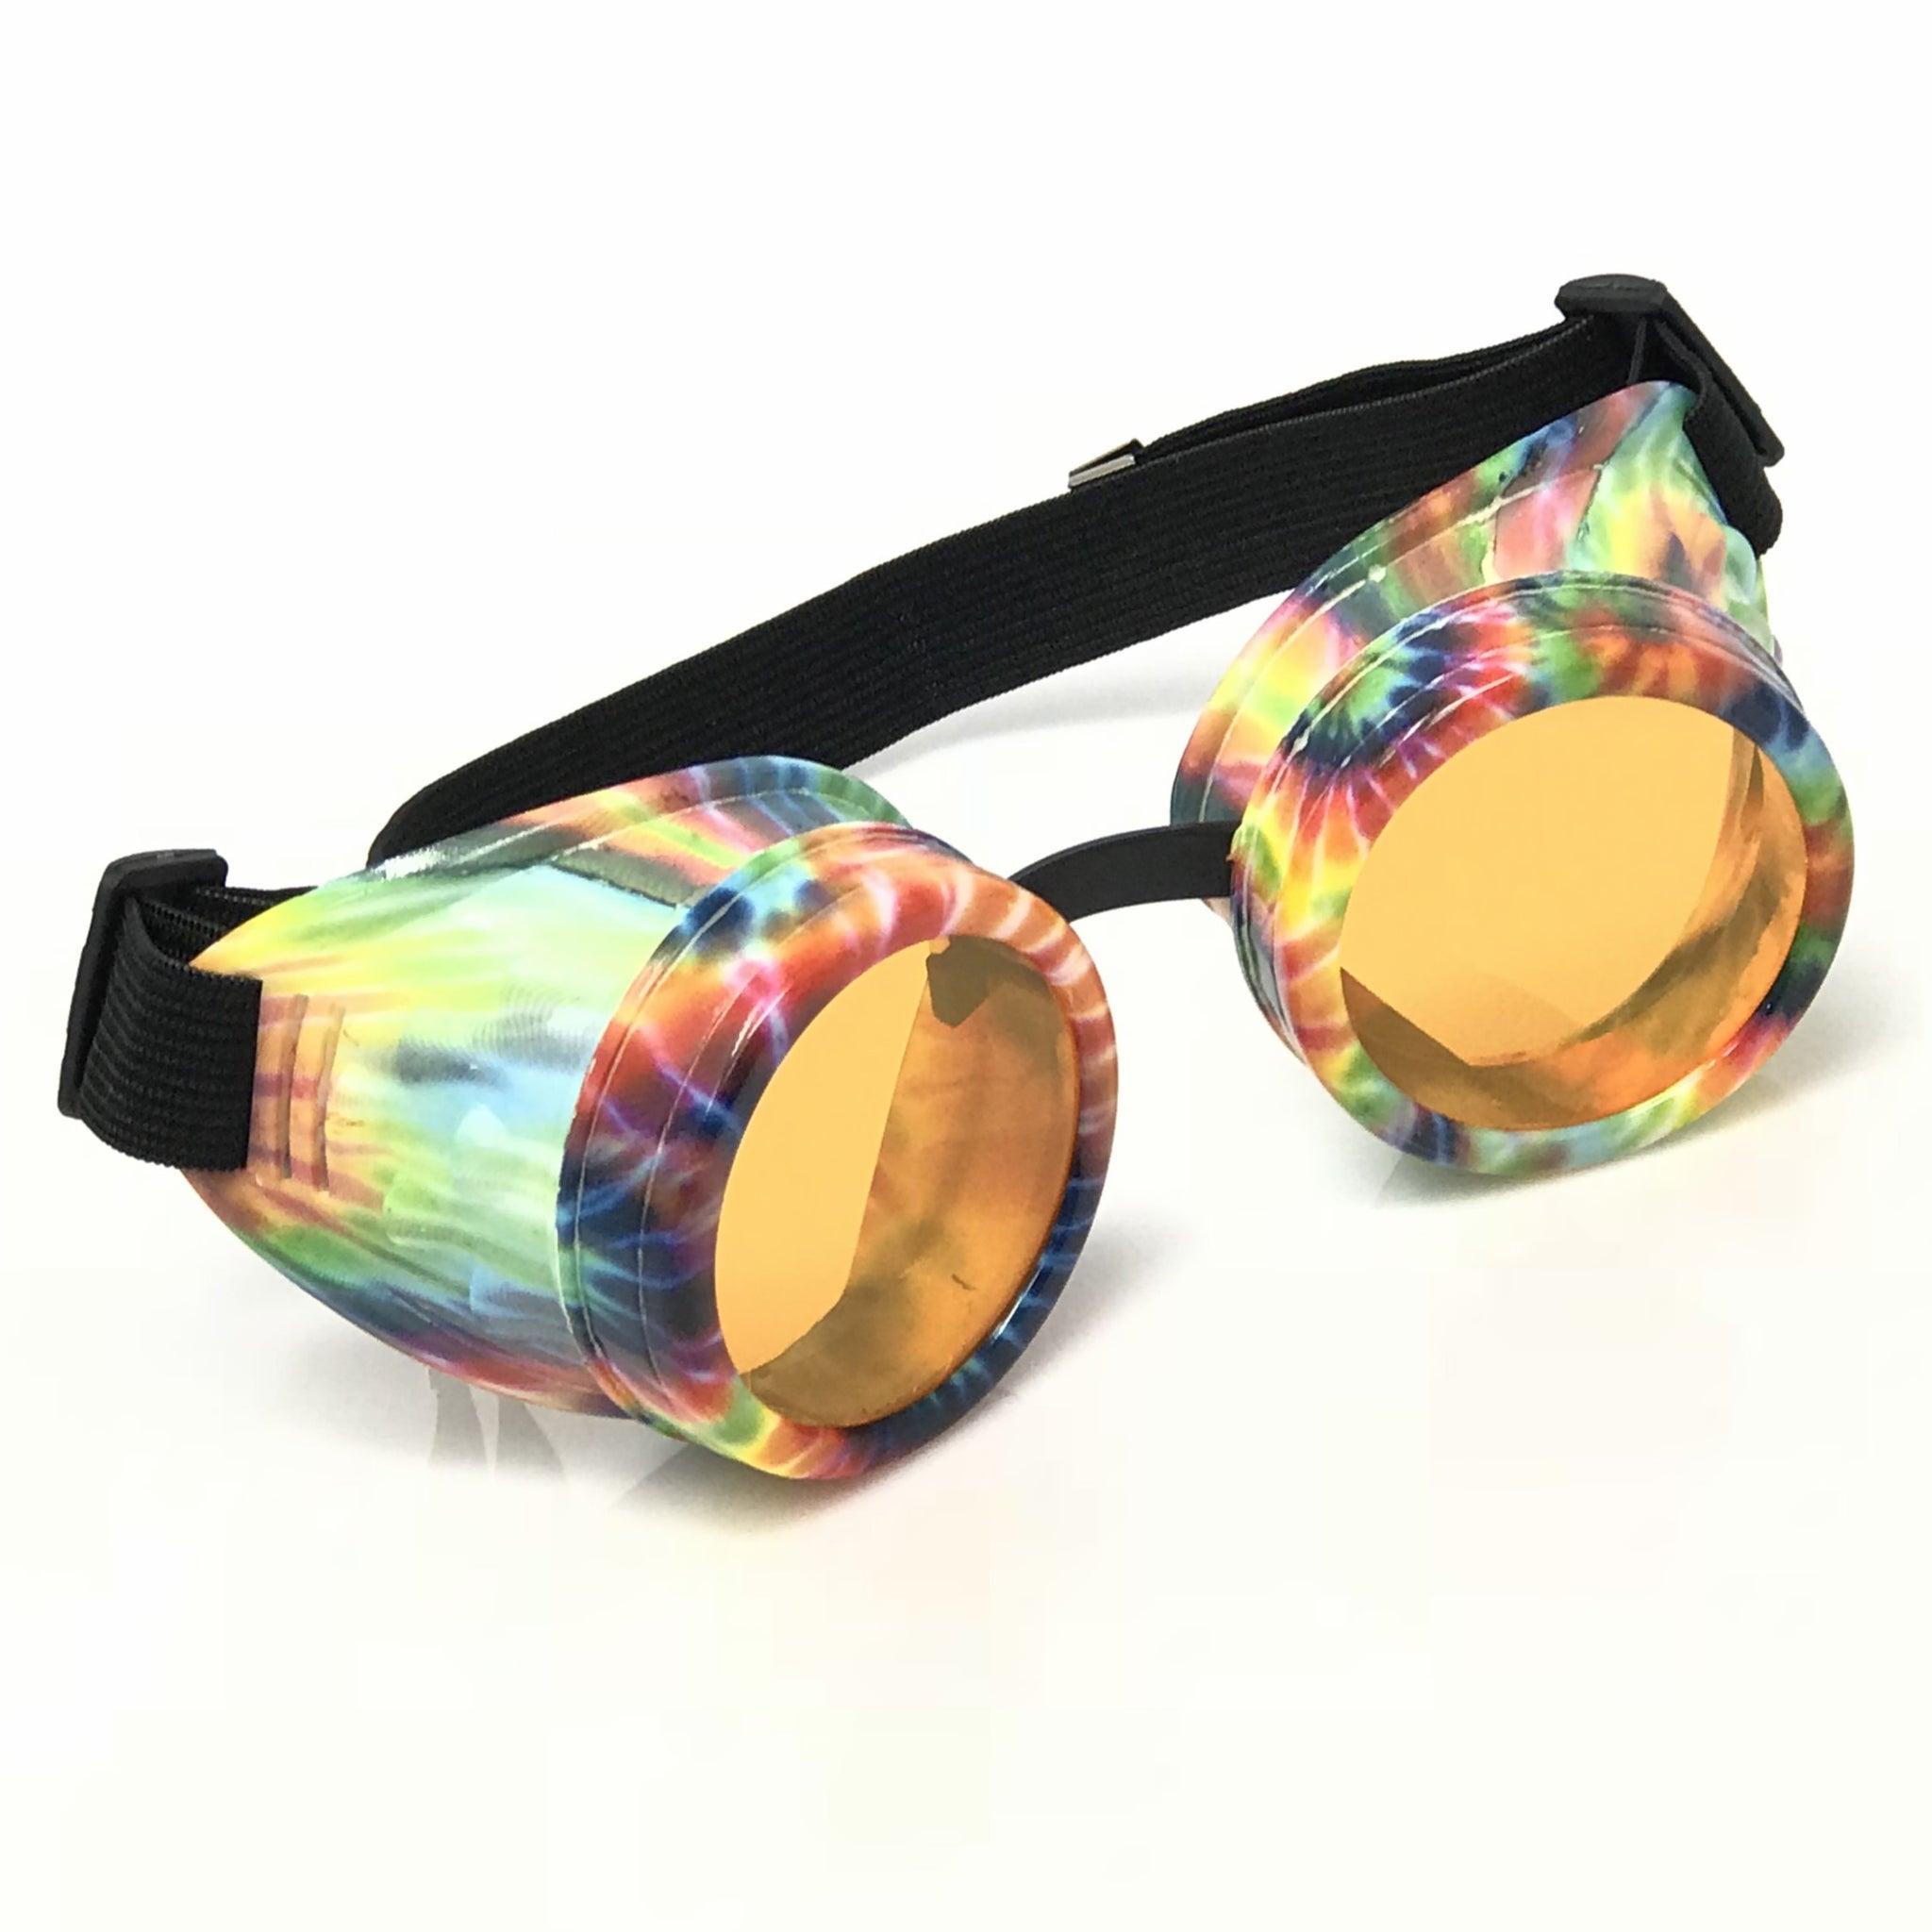 787743ecdd5 UV Glow in The Dark Steampunk Rave Goggles Prism Diffraction Glasses ...